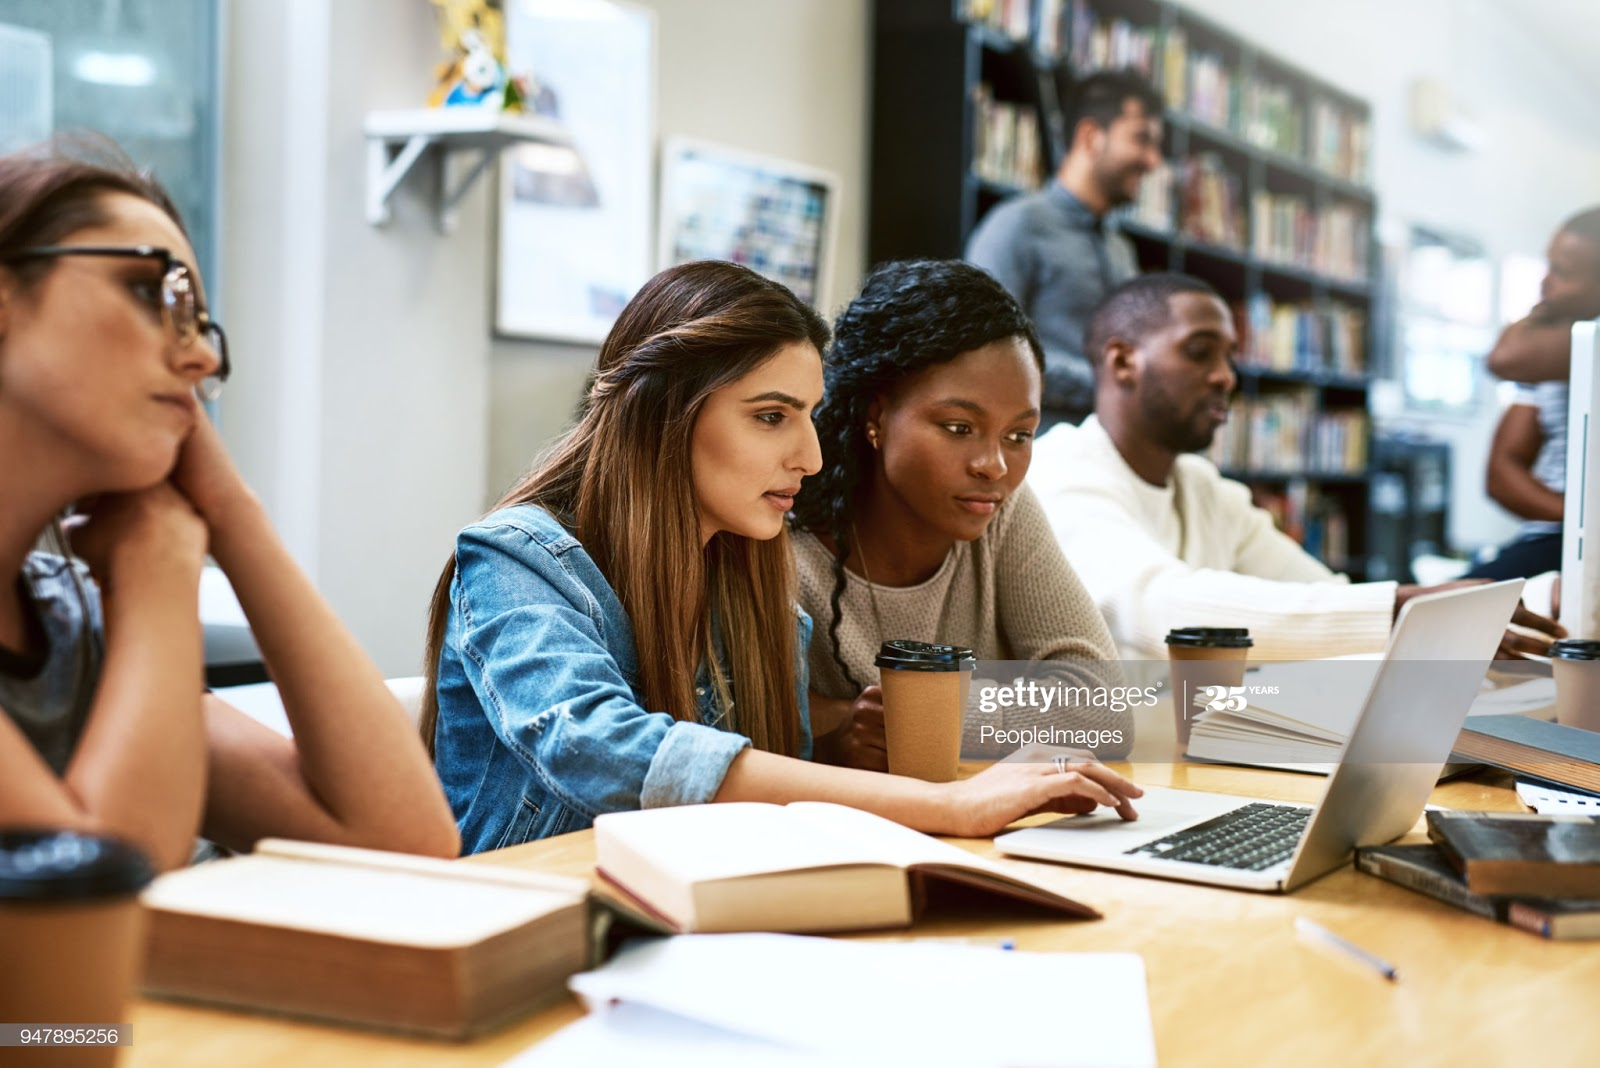 Top 10 Best Online Degree Colleges for International Students Abroad.